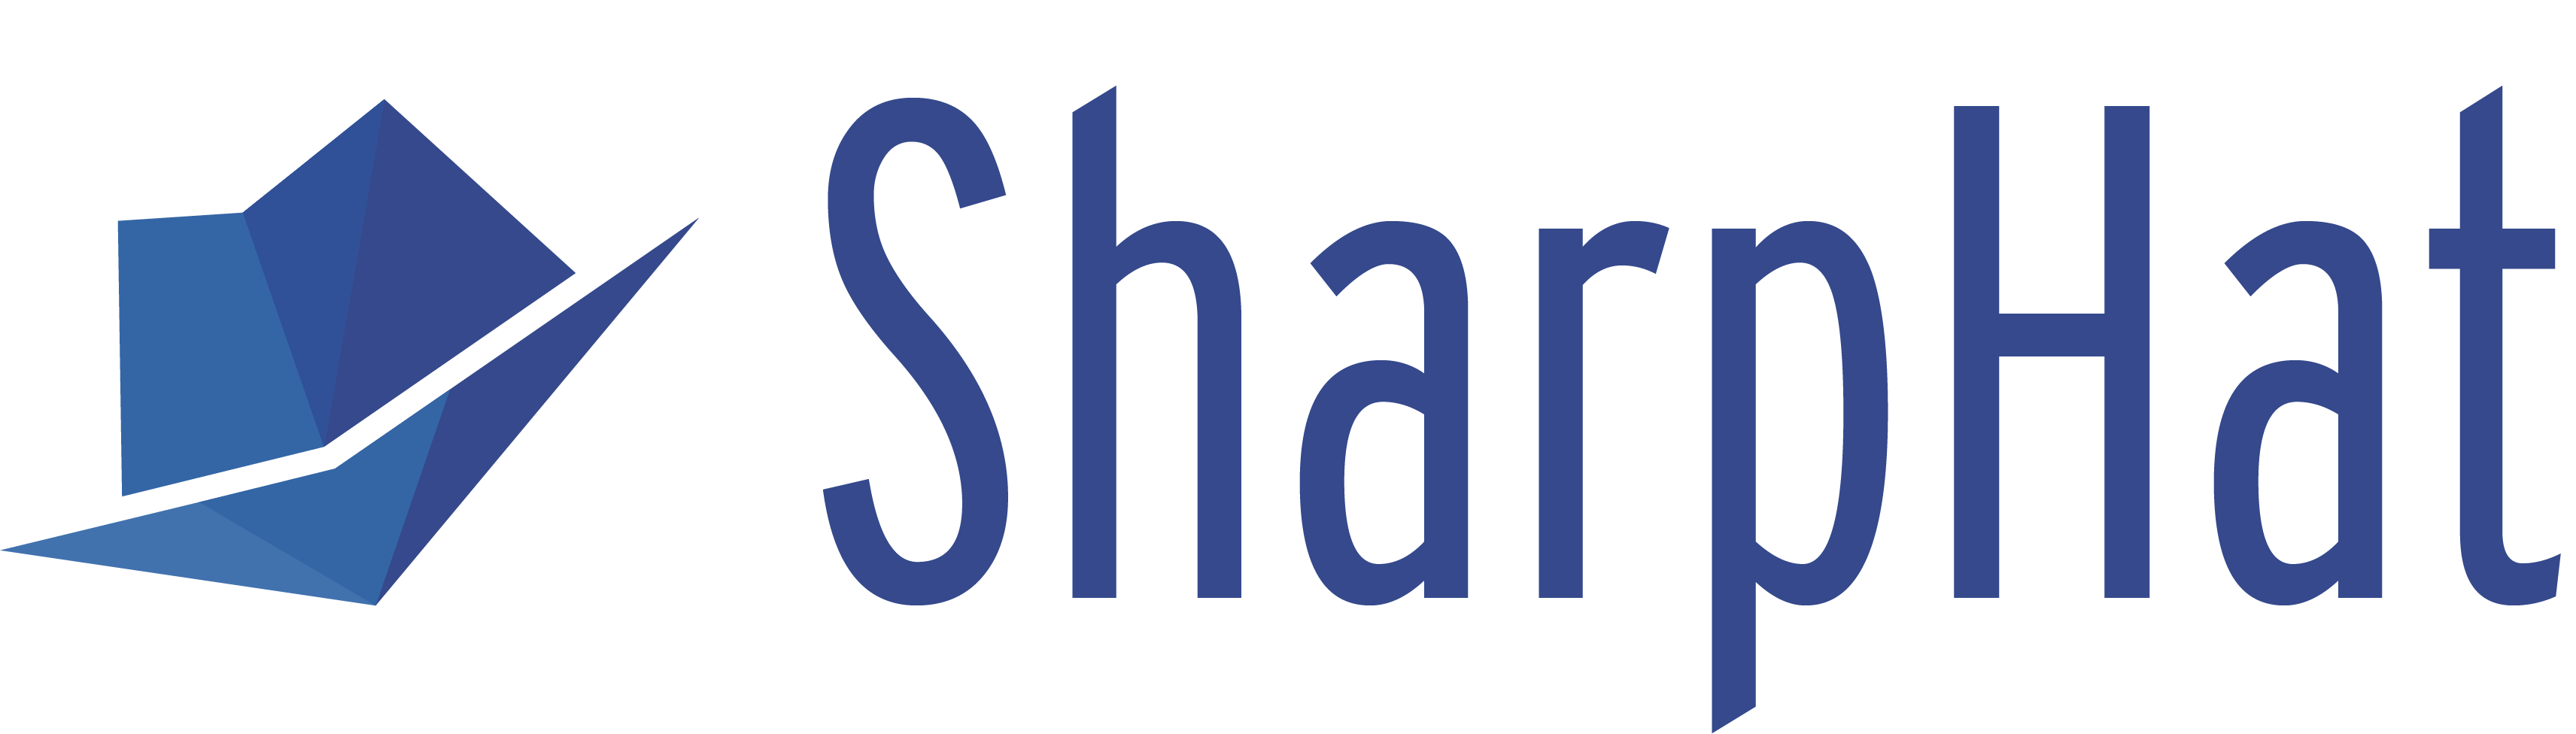 SharpHat, Inc.